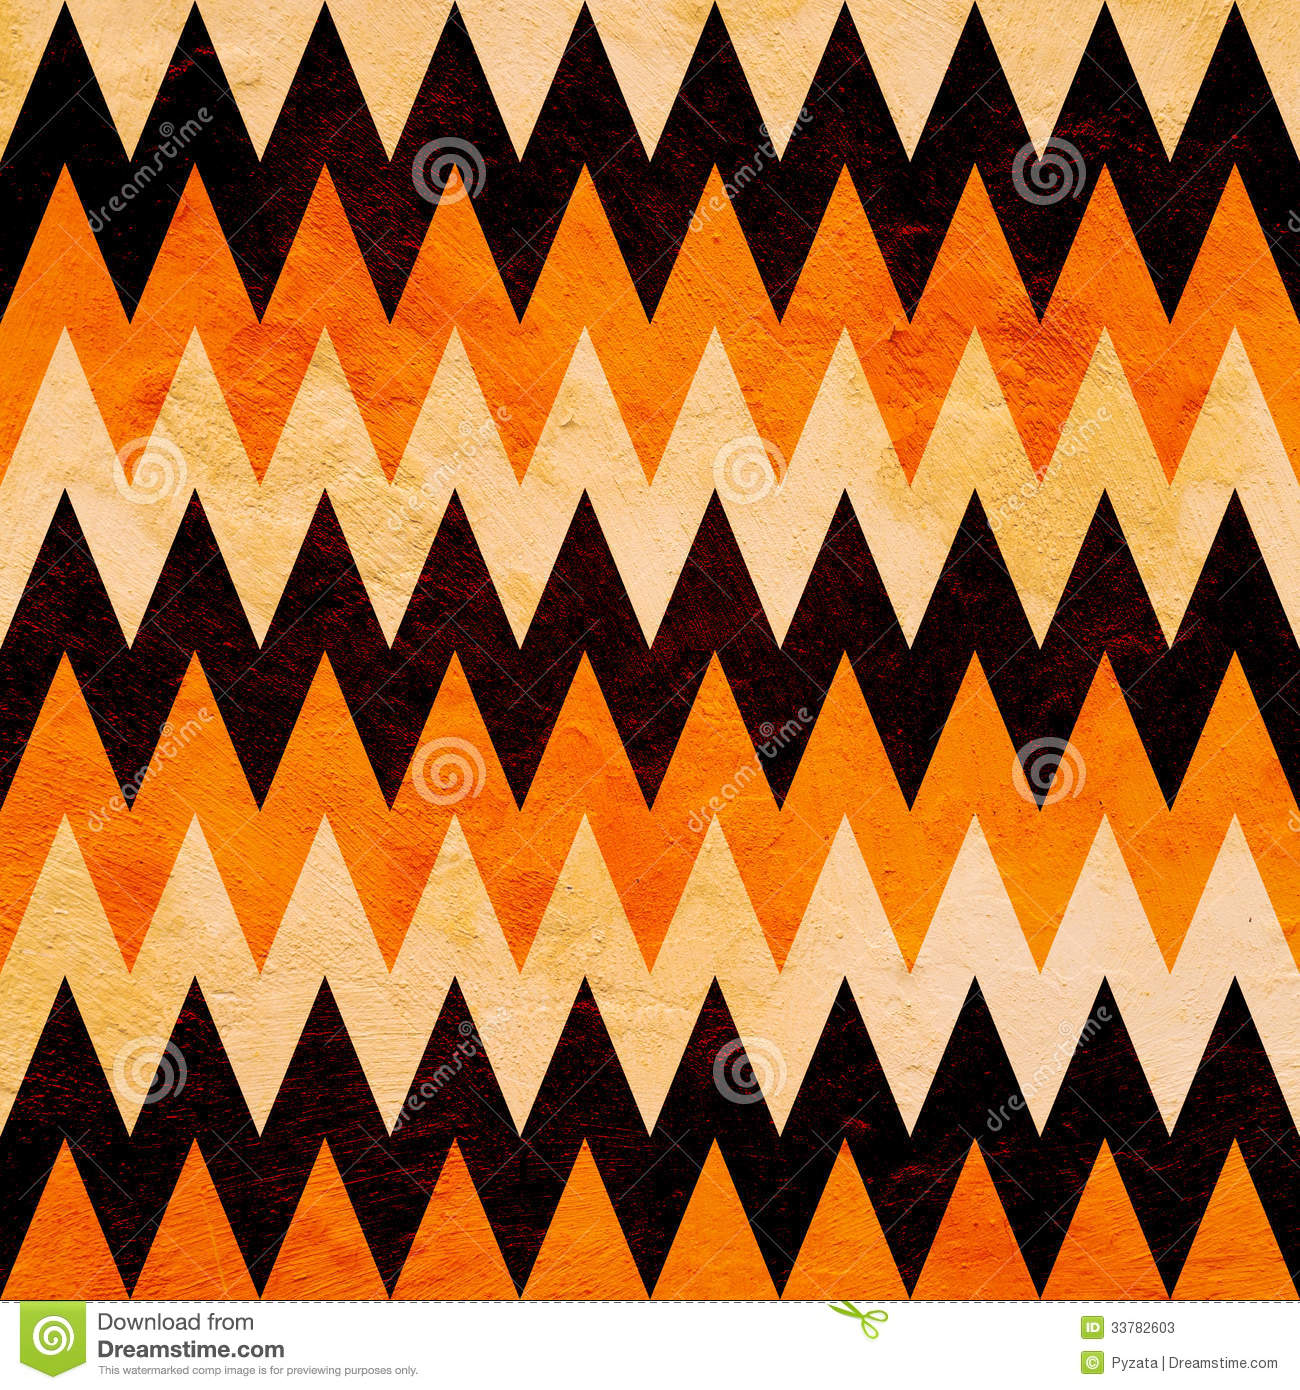 Great Wallpaper Halloween Grunge - halloween-chevron-abstract-grunge-pattern-33782603  Trends_941989.jpg